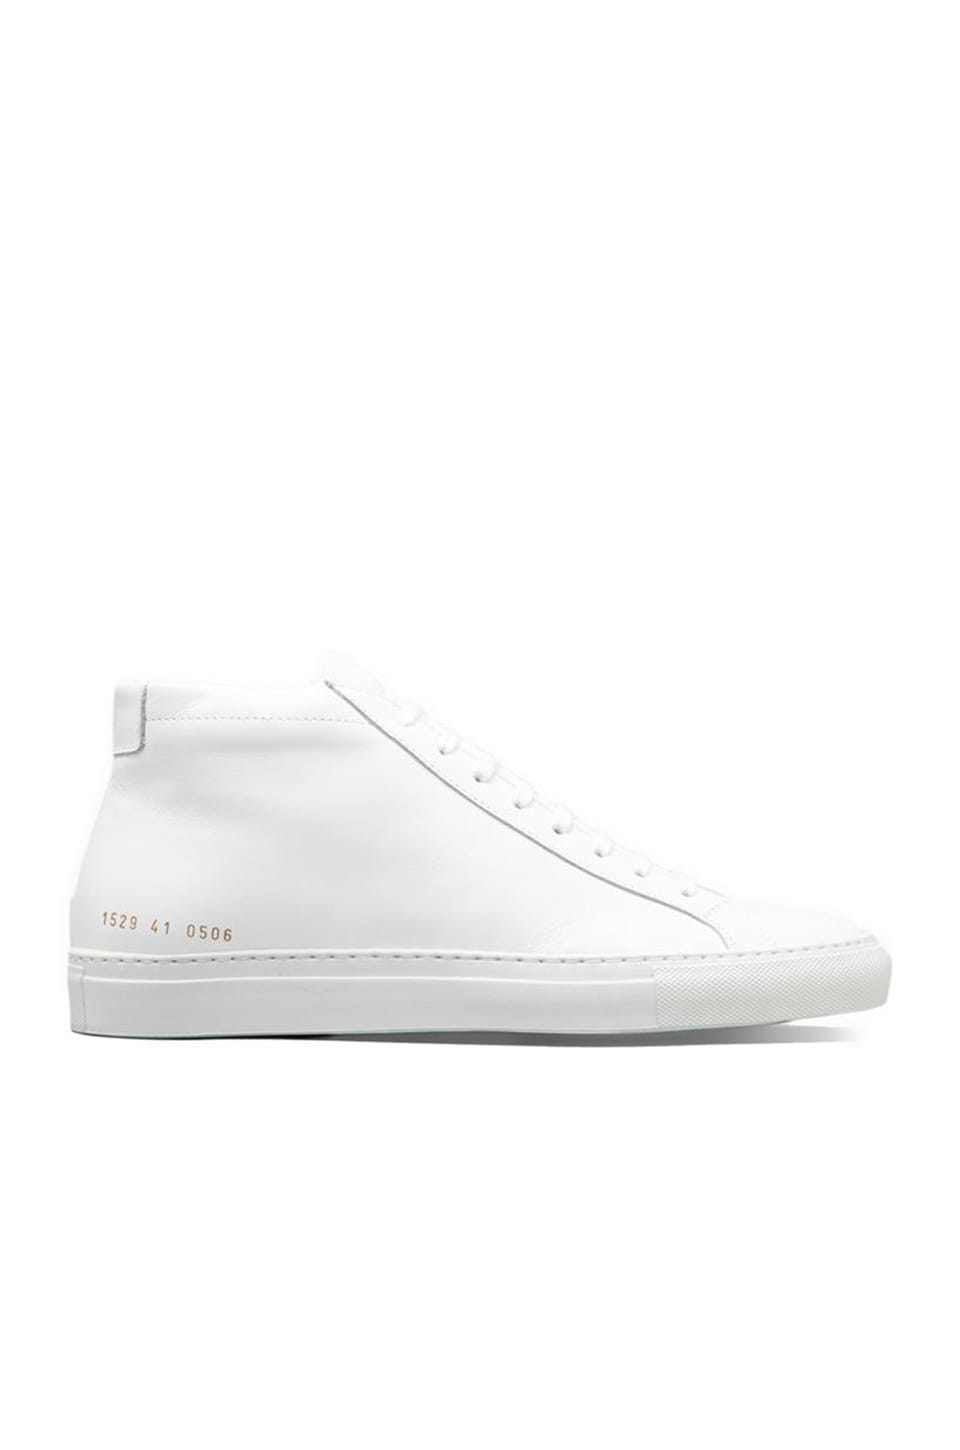 Common Projects Original Achilles Mid in White